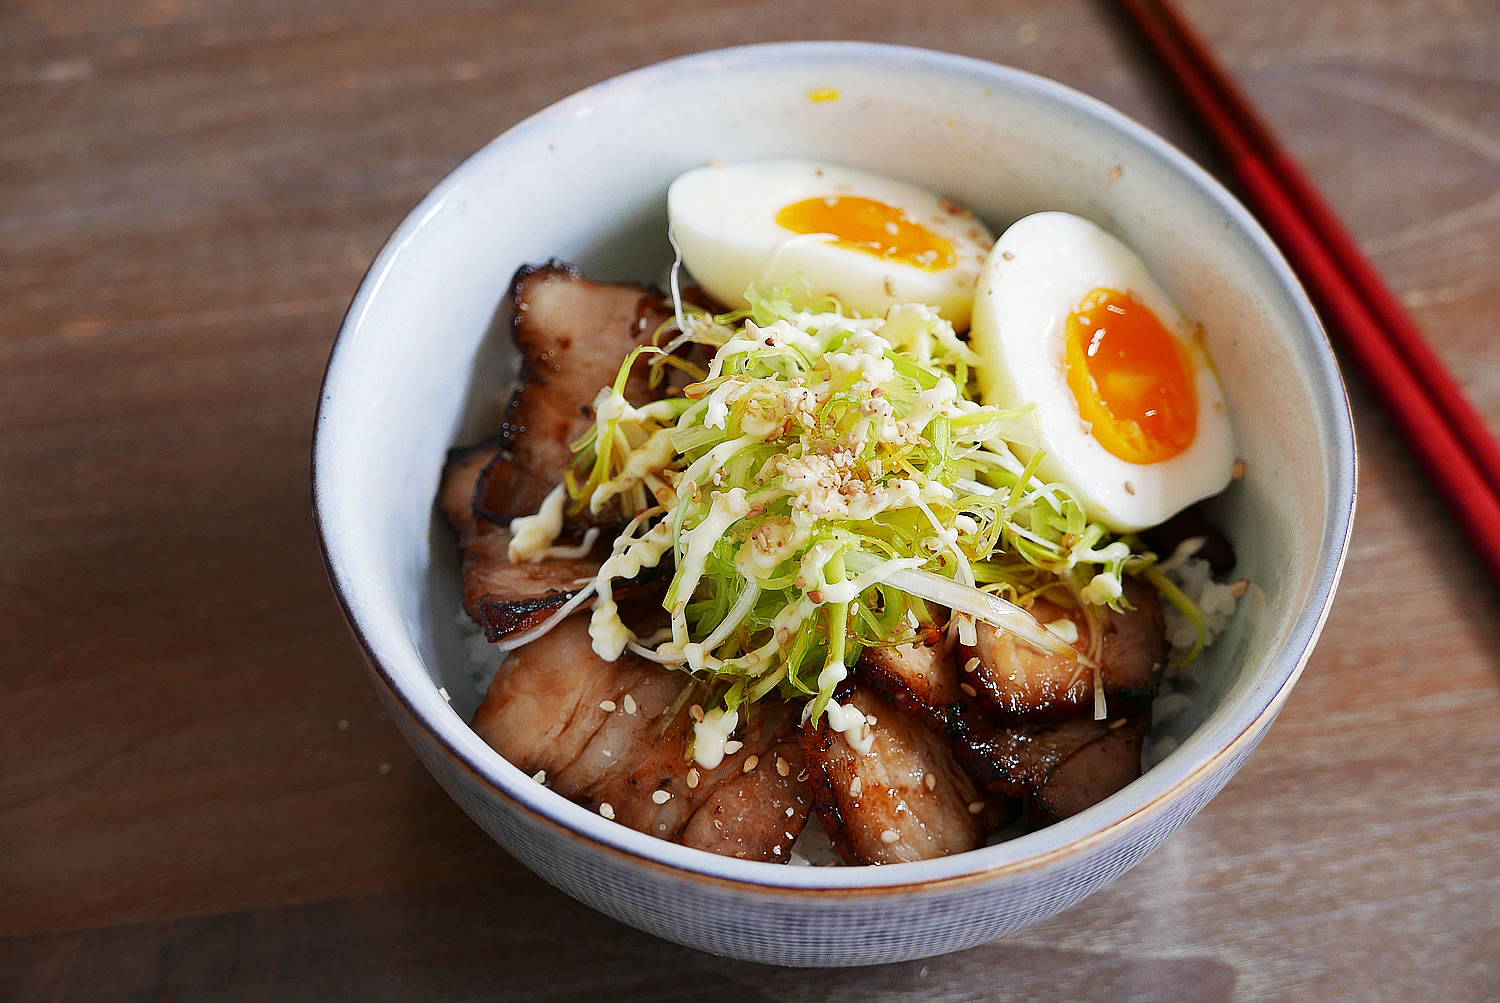 Char siu donburi Rice bowl